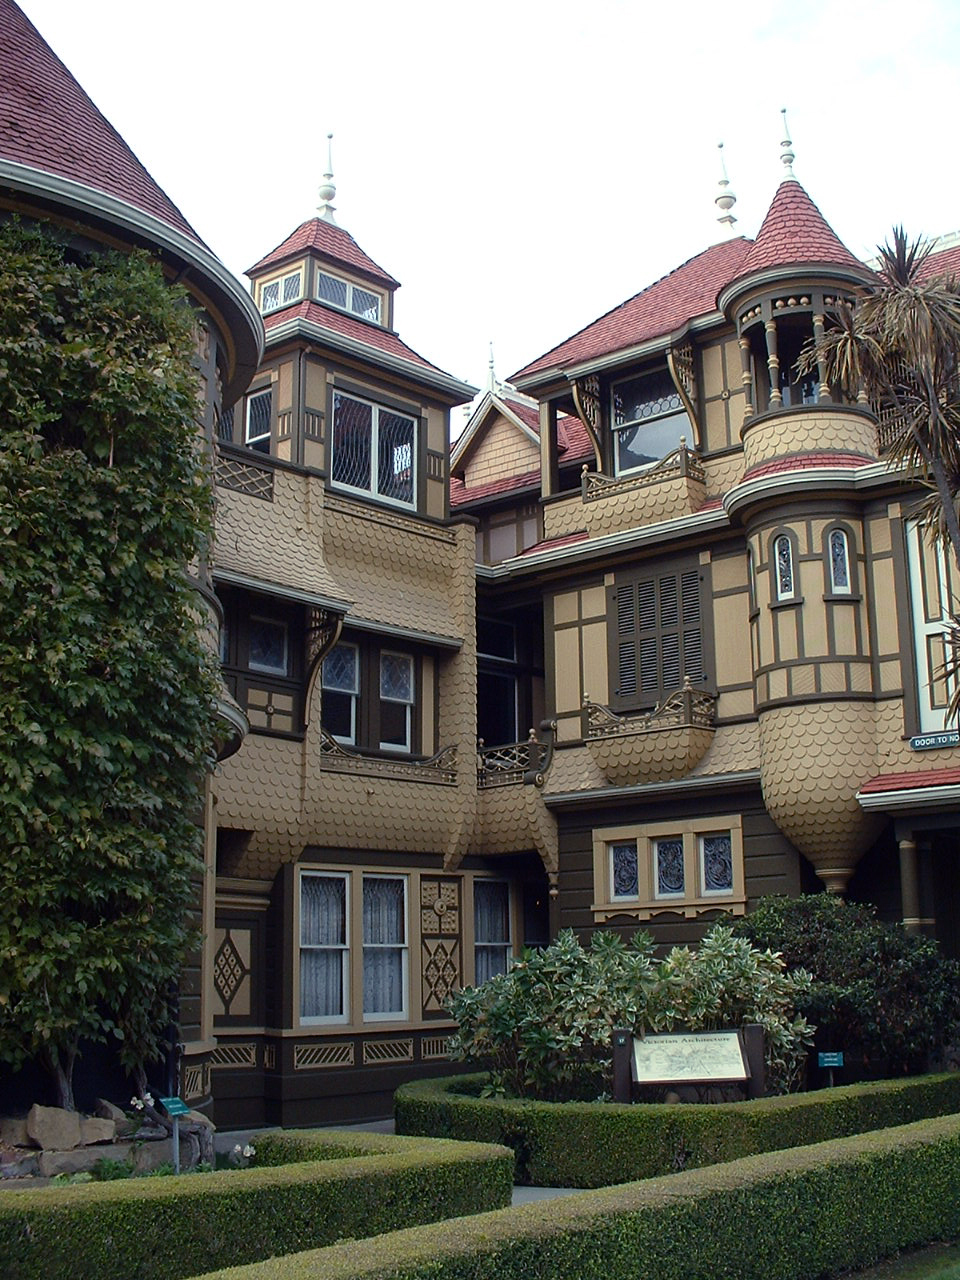 file:winchester mystery house (corner) - wikimedia commons